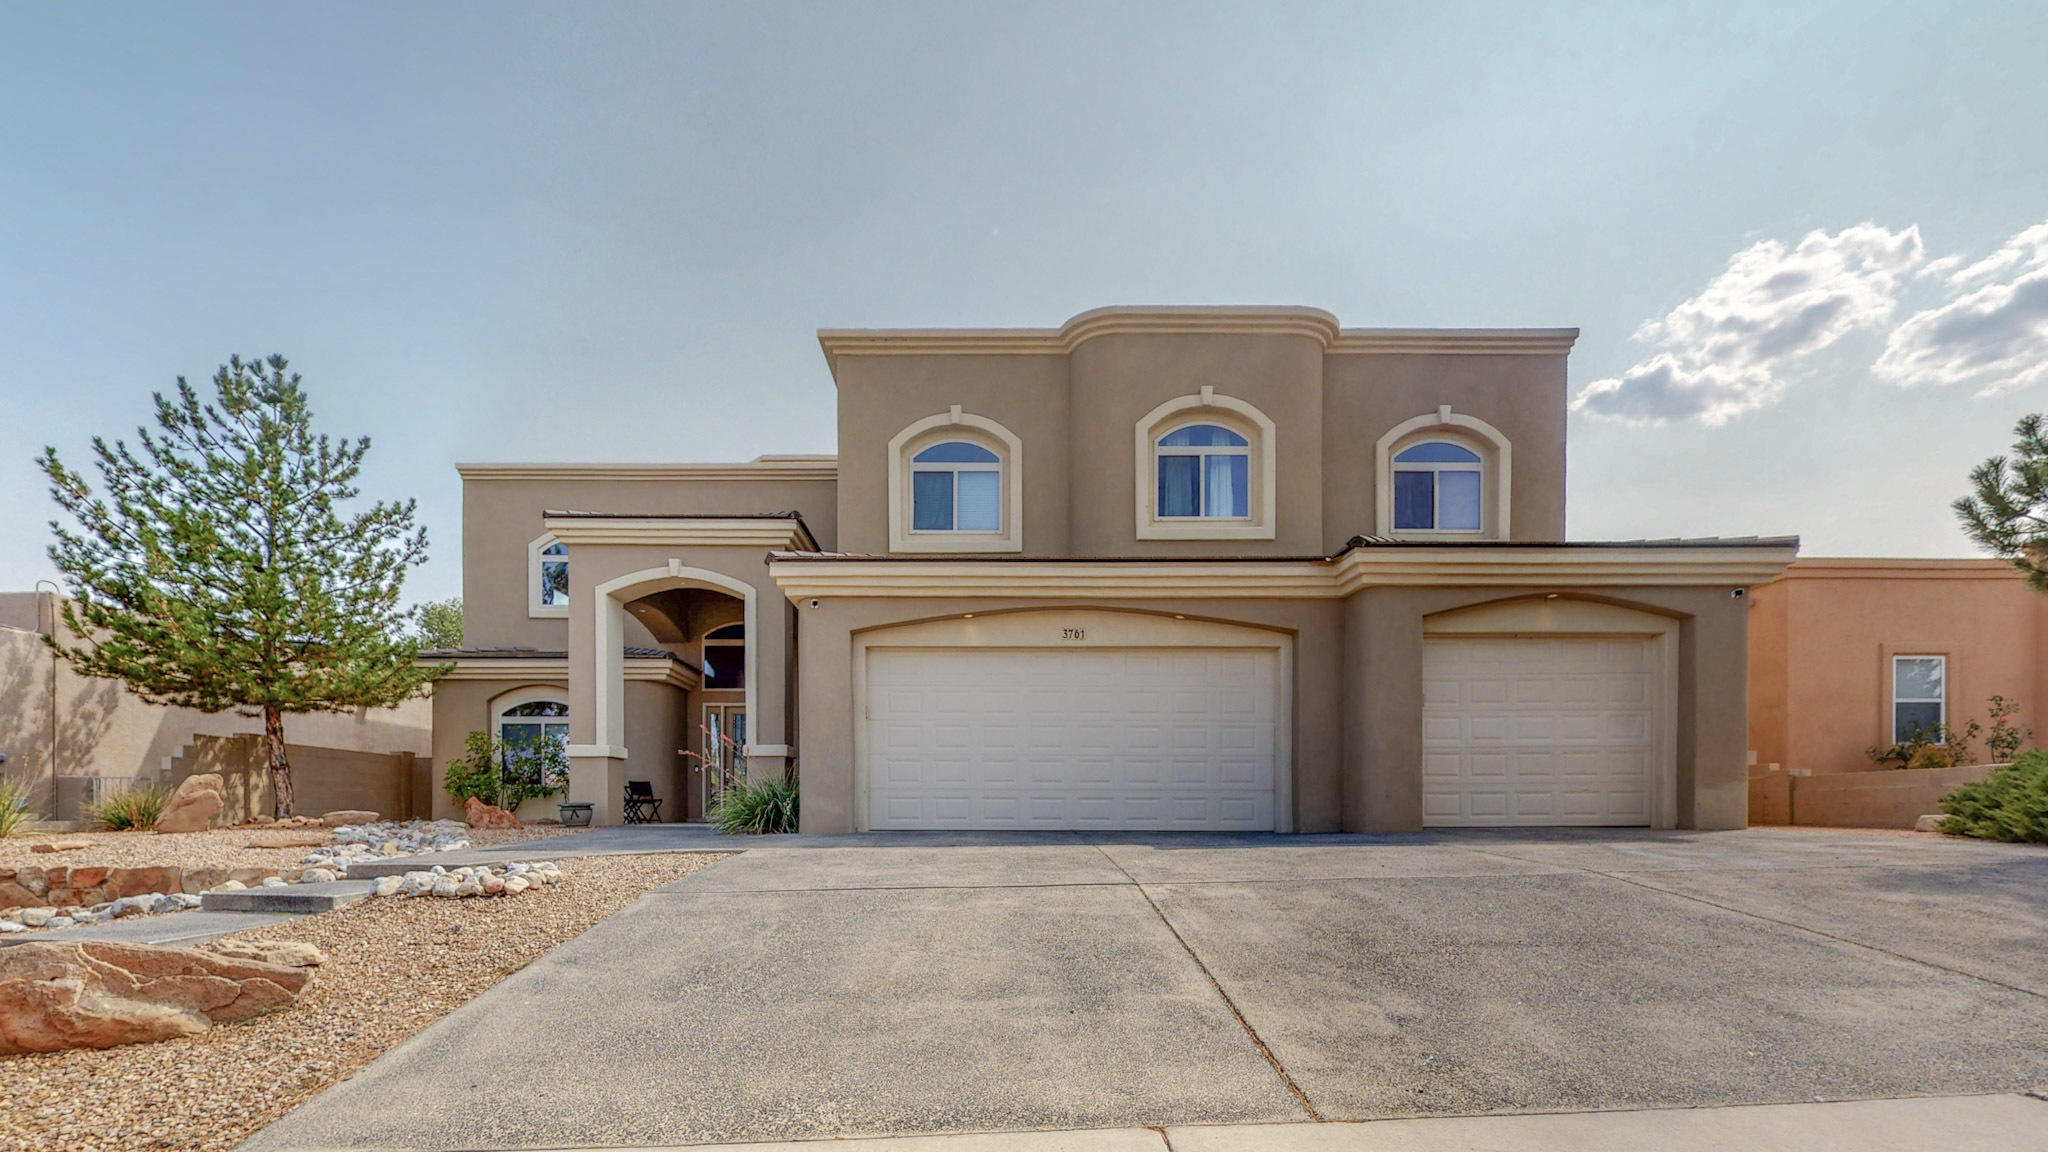 3761 SPYGLASS Loop SE Property Photo - Rio Rancho, NM real estate listing